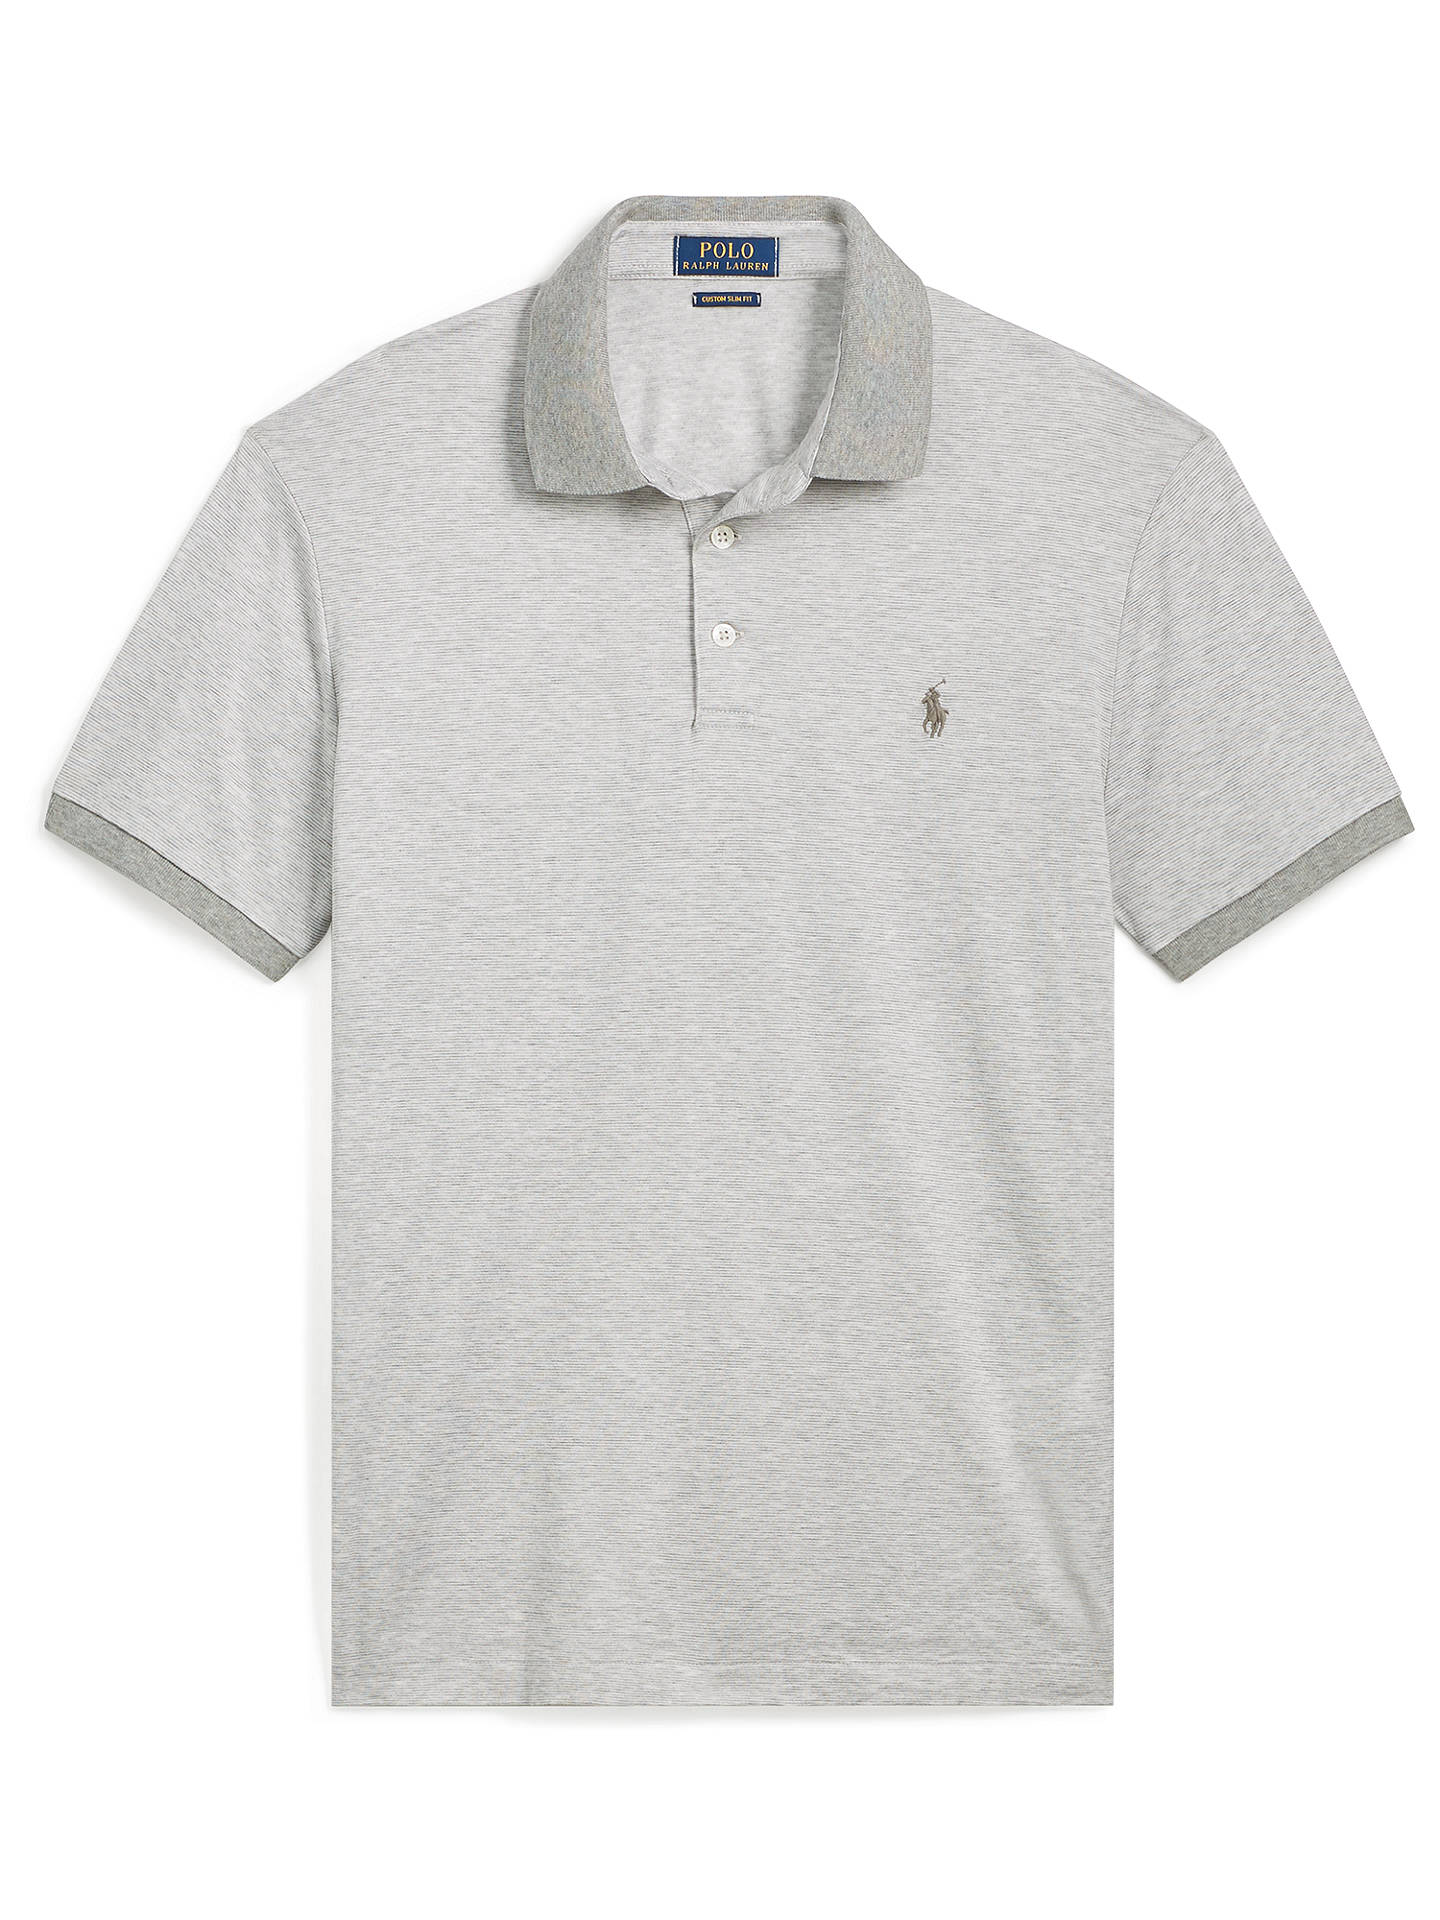 BuyPolo Ralph Lauren Mercerized Short Sleeve Polo Shirt, Andover Heather/White, S Online at johnlewis.com